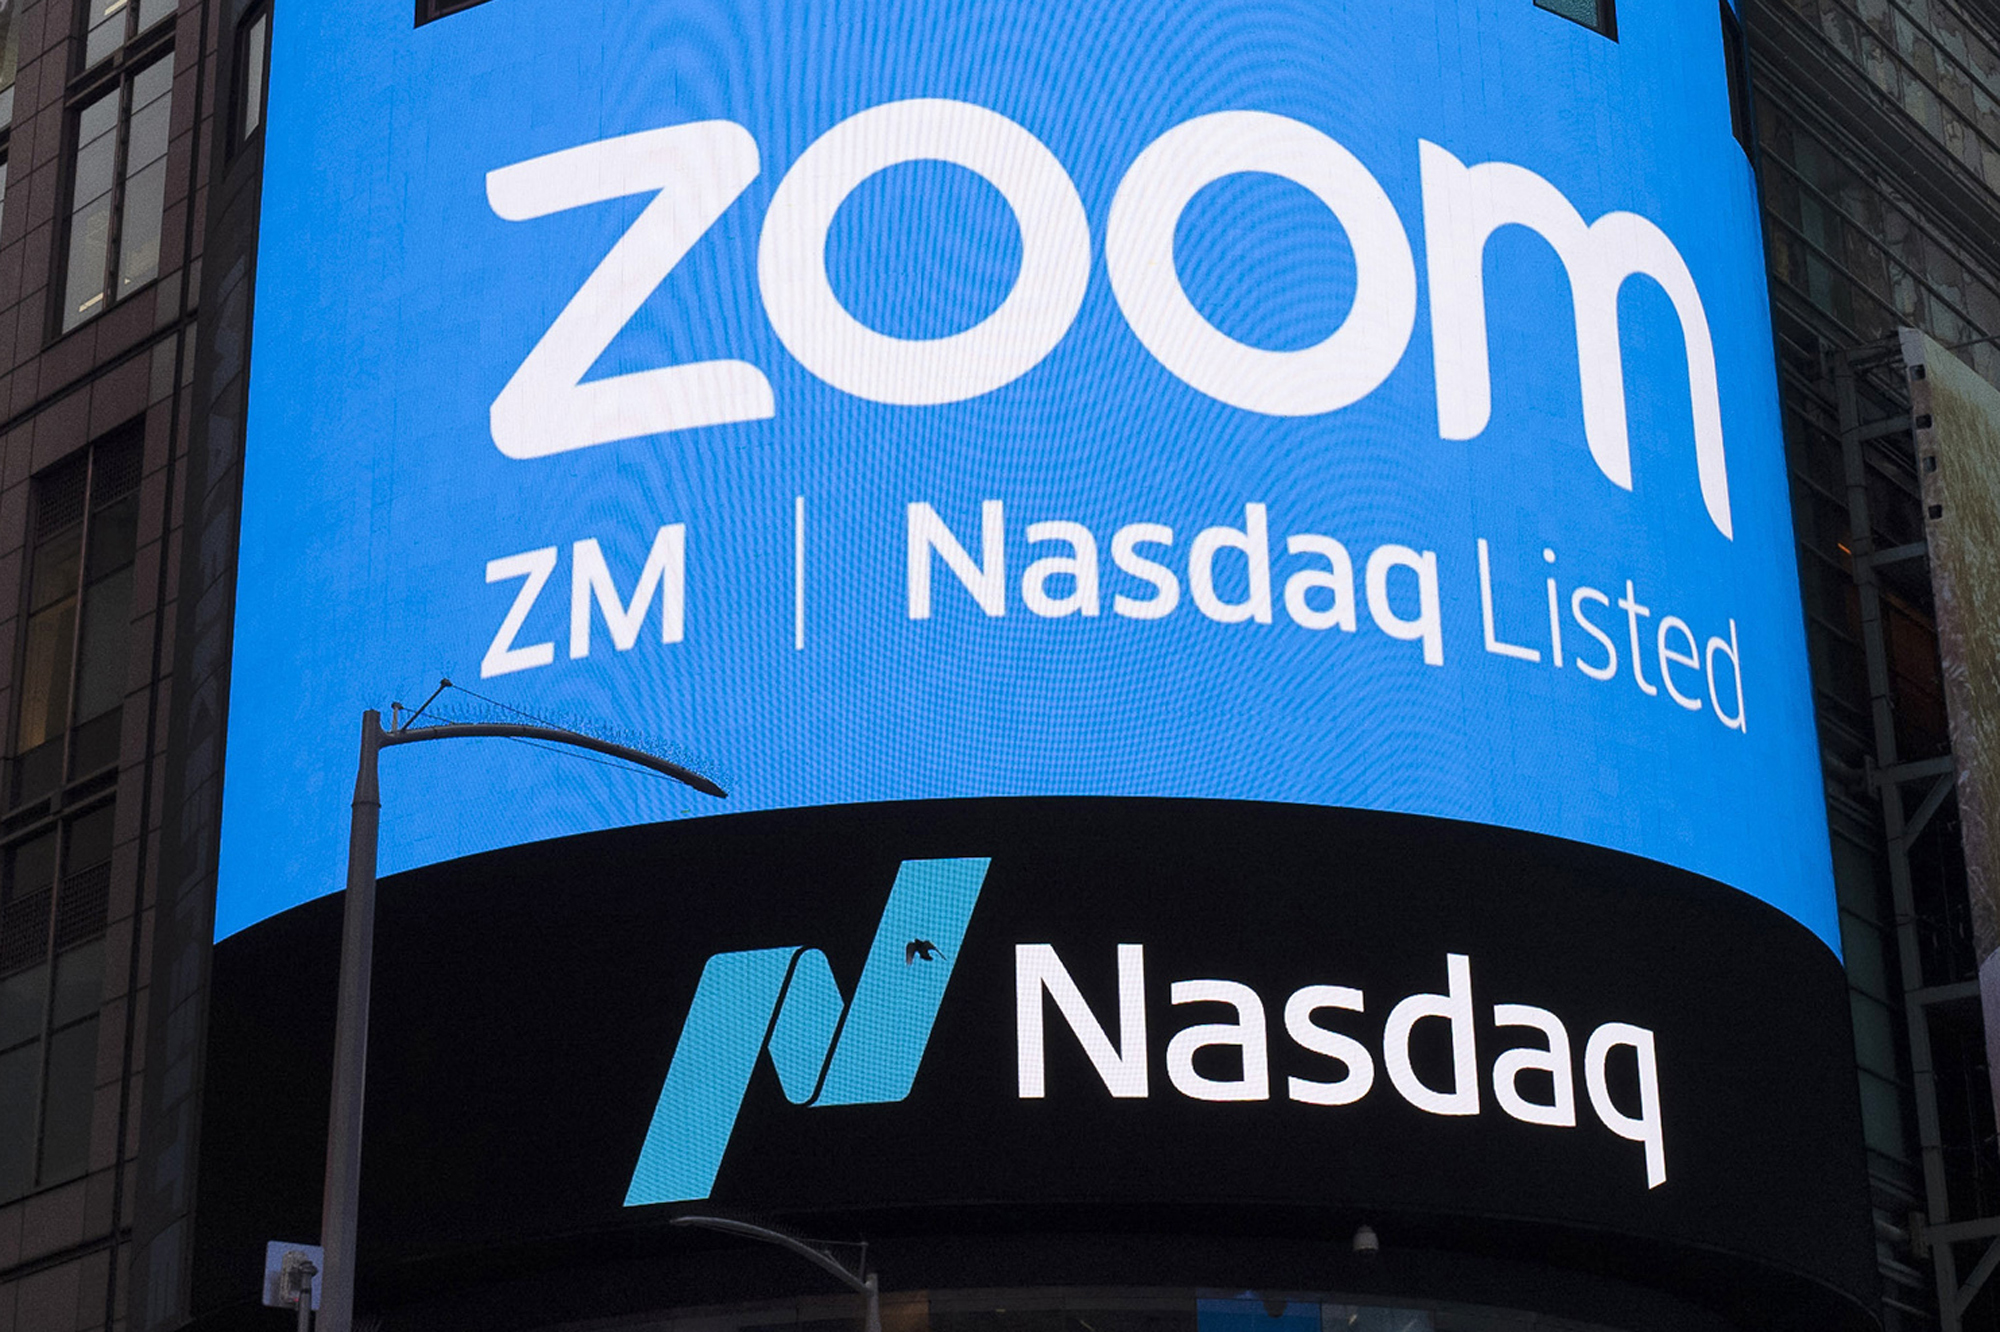 This April 18, 2019, file photo shows a sign for Zoom Video Communications ahead of their Nasdaq IPO in New York. (AP Photo/Mark Lennihan, File)